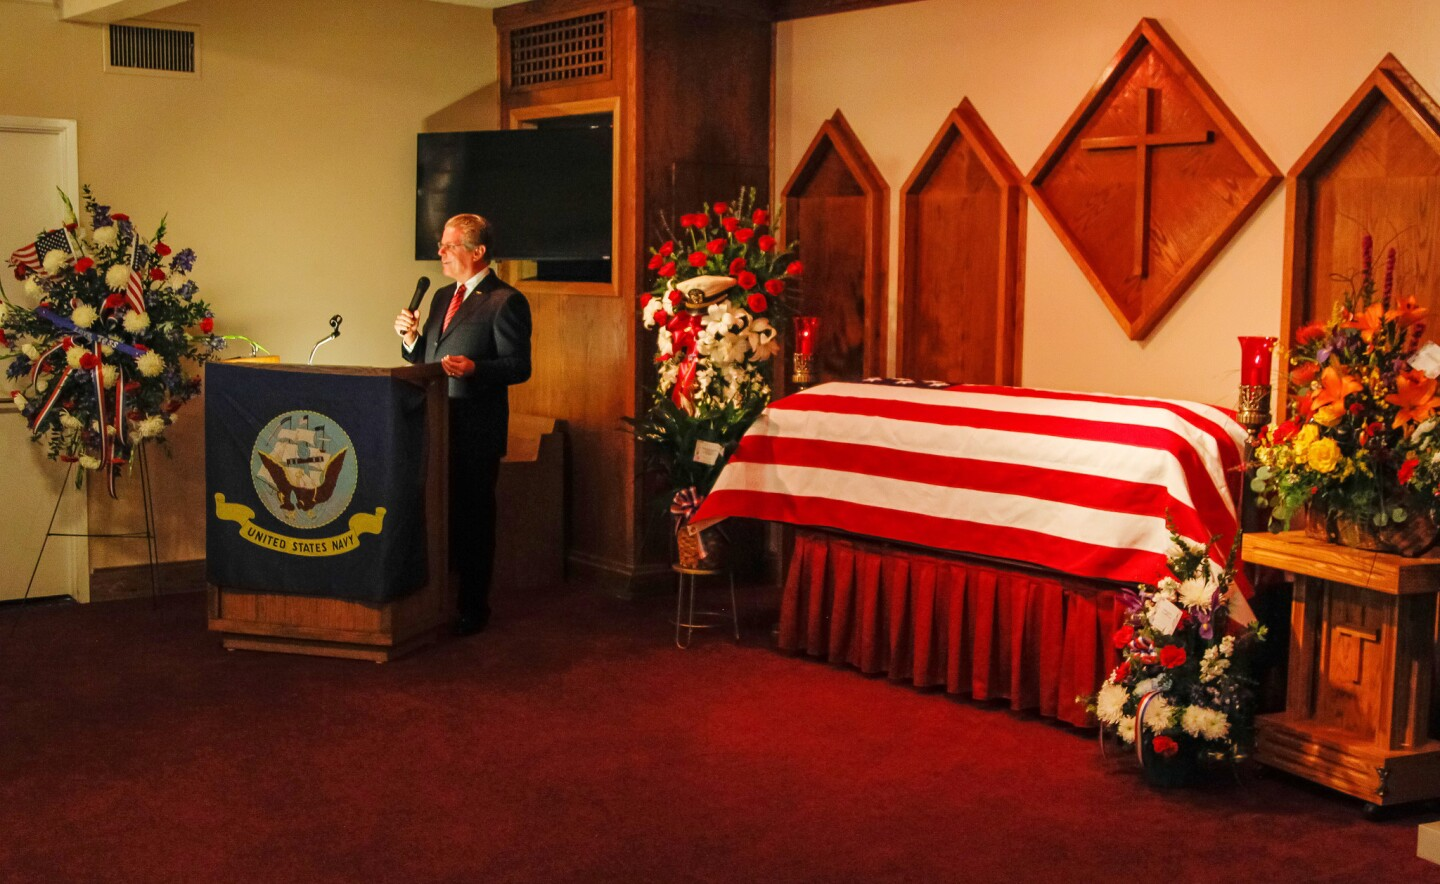 Mac McLaughlin, president and ceo of the USS Midway Museum, speaks during Rudy Matz's memorial service at the Poway Bernardo Mortuary.